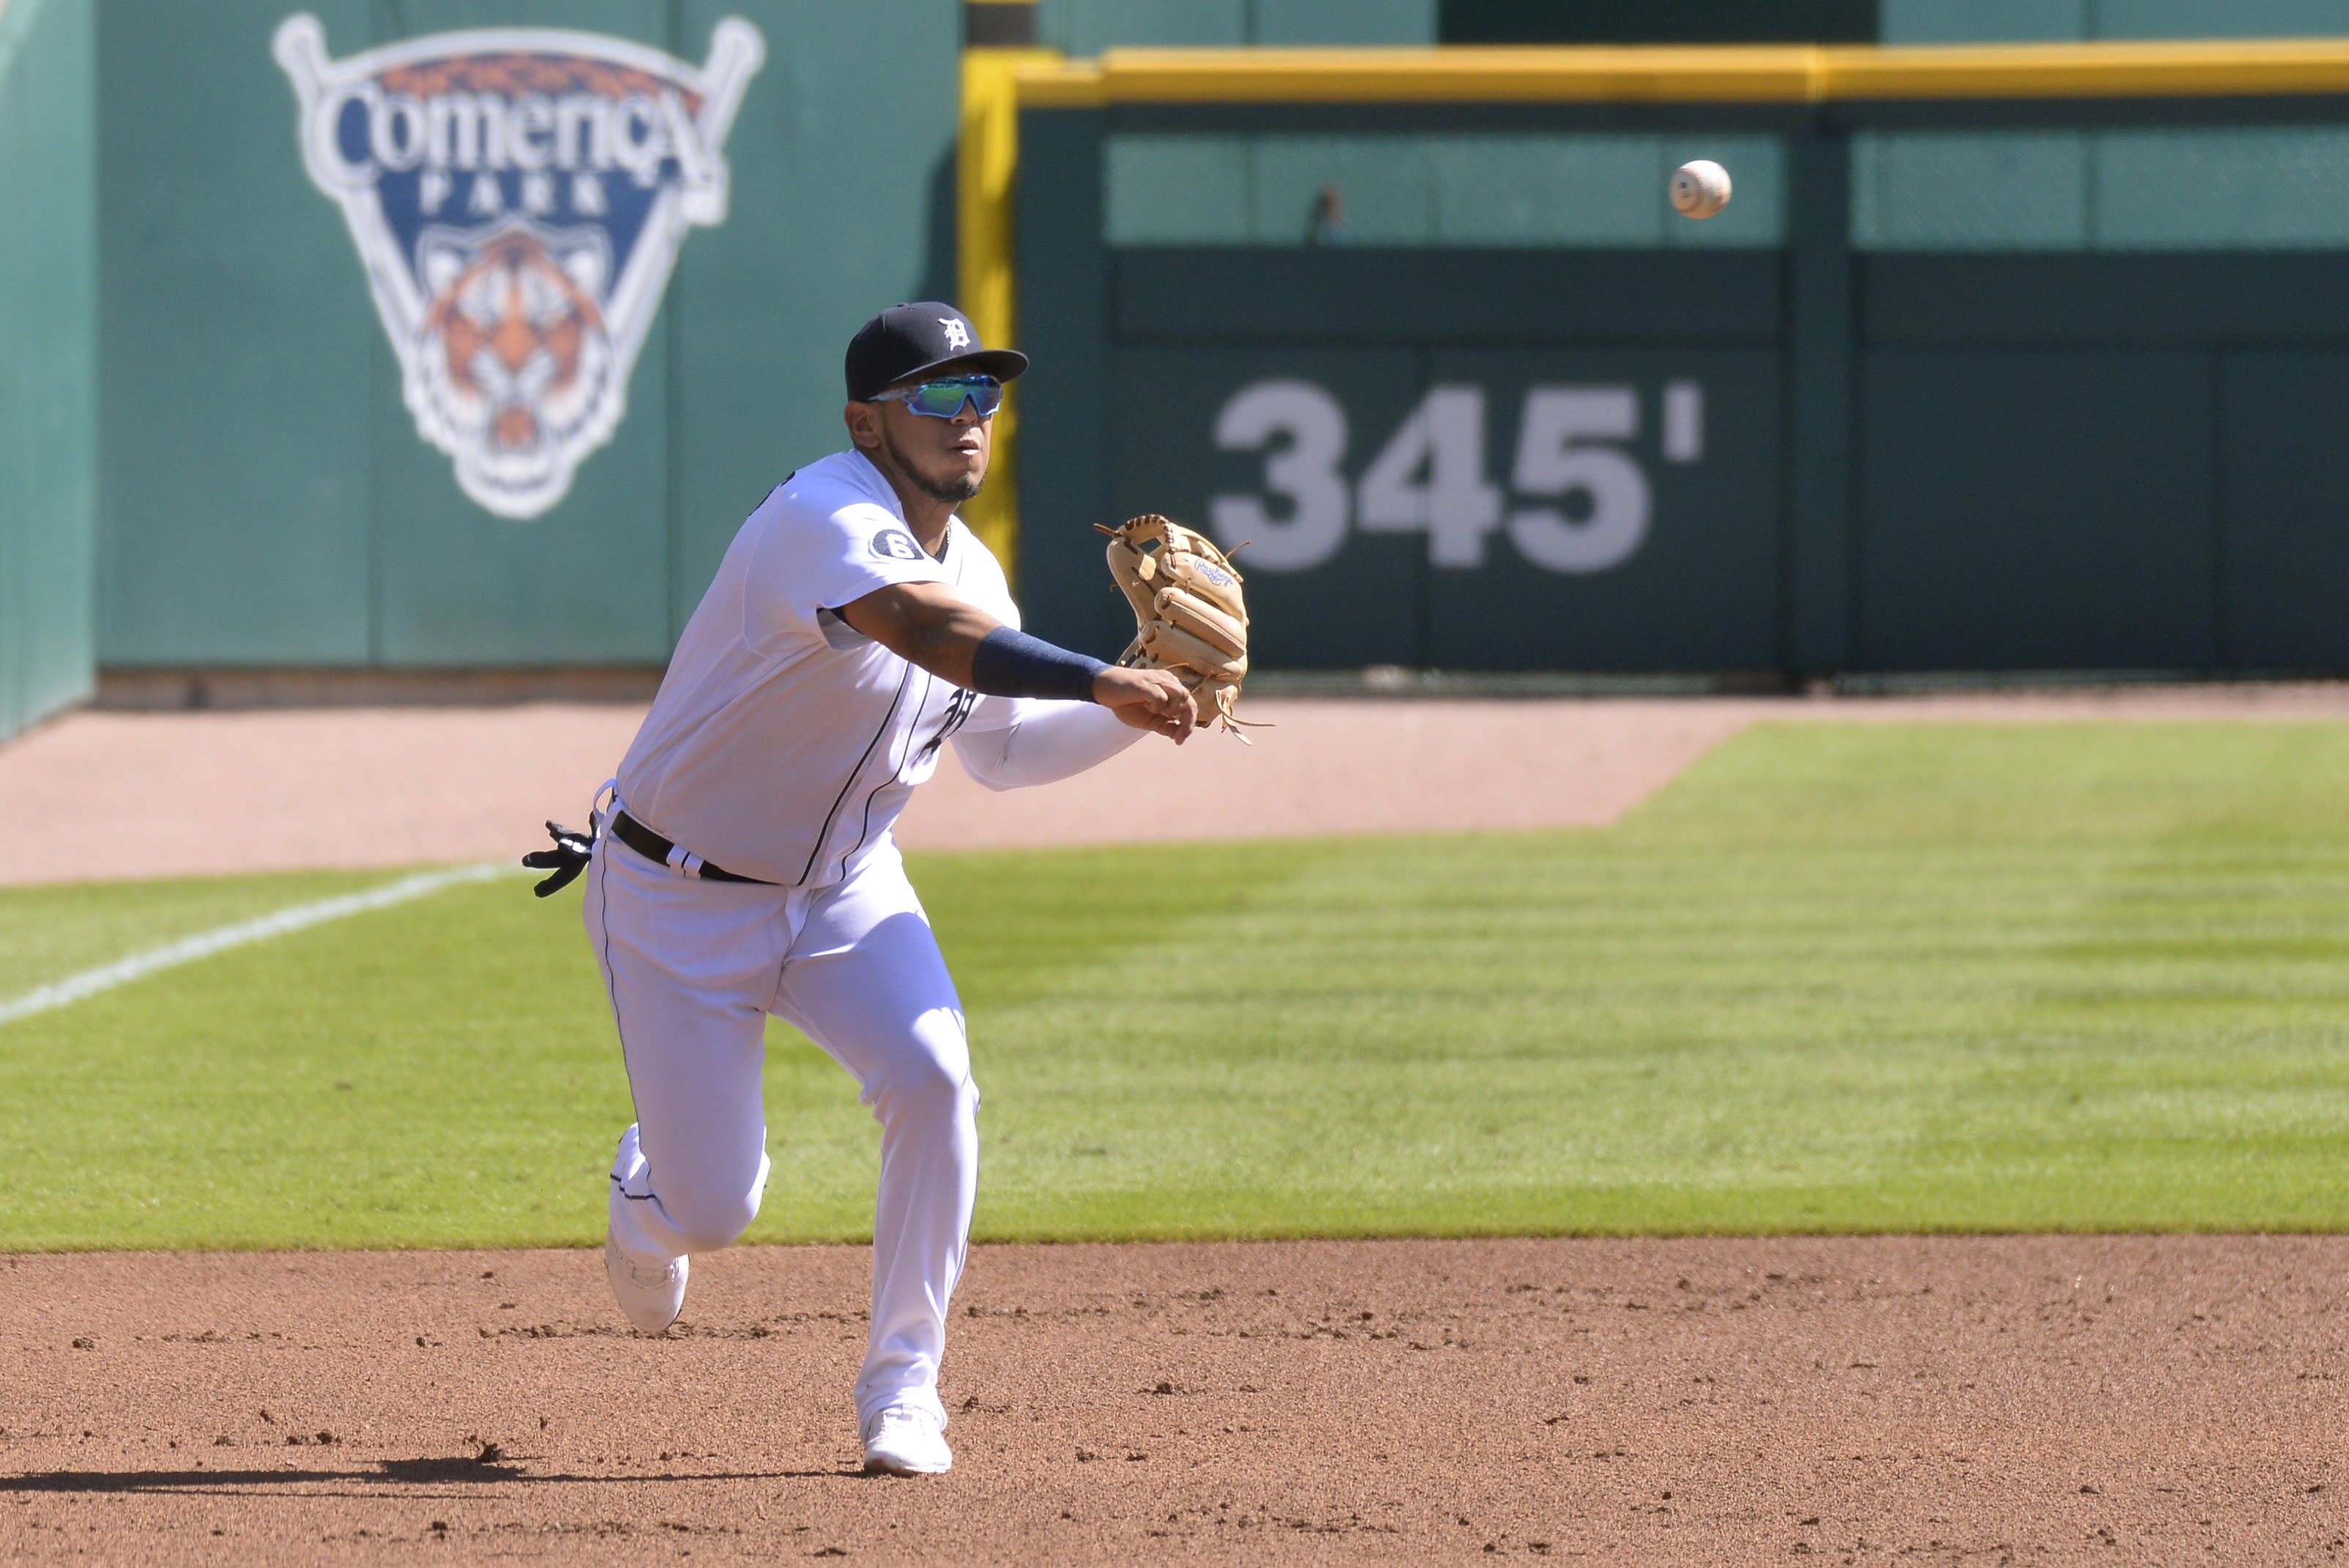 Detroit Tigers third baseman Isaac Paredes thows to first base for an out against the Cleveland Indians in the first inning of a baseball game, Sunday, Sept. 20, 2020, in Detroit. (AP Photo/Jose Juarez)